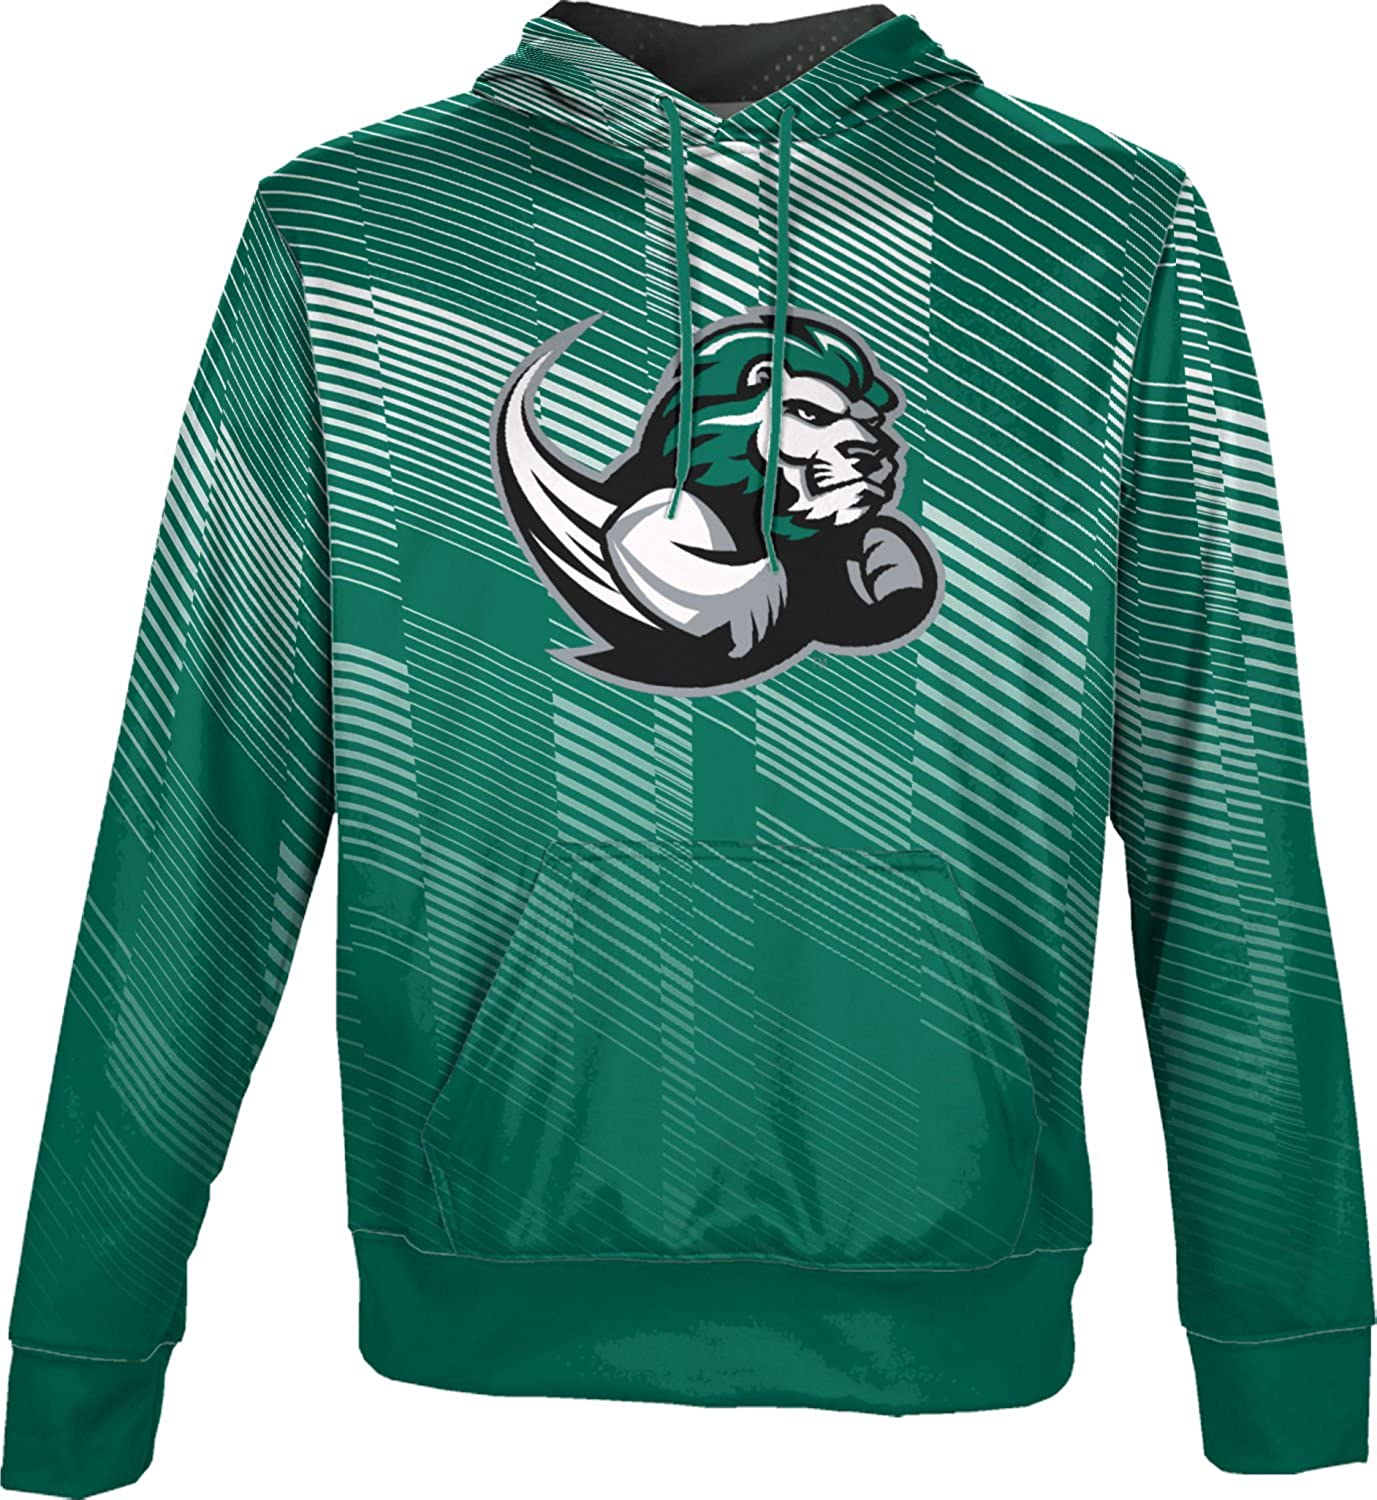 Bold ProSphere Slippery Rock University Boys Hoodie Sweatshirt